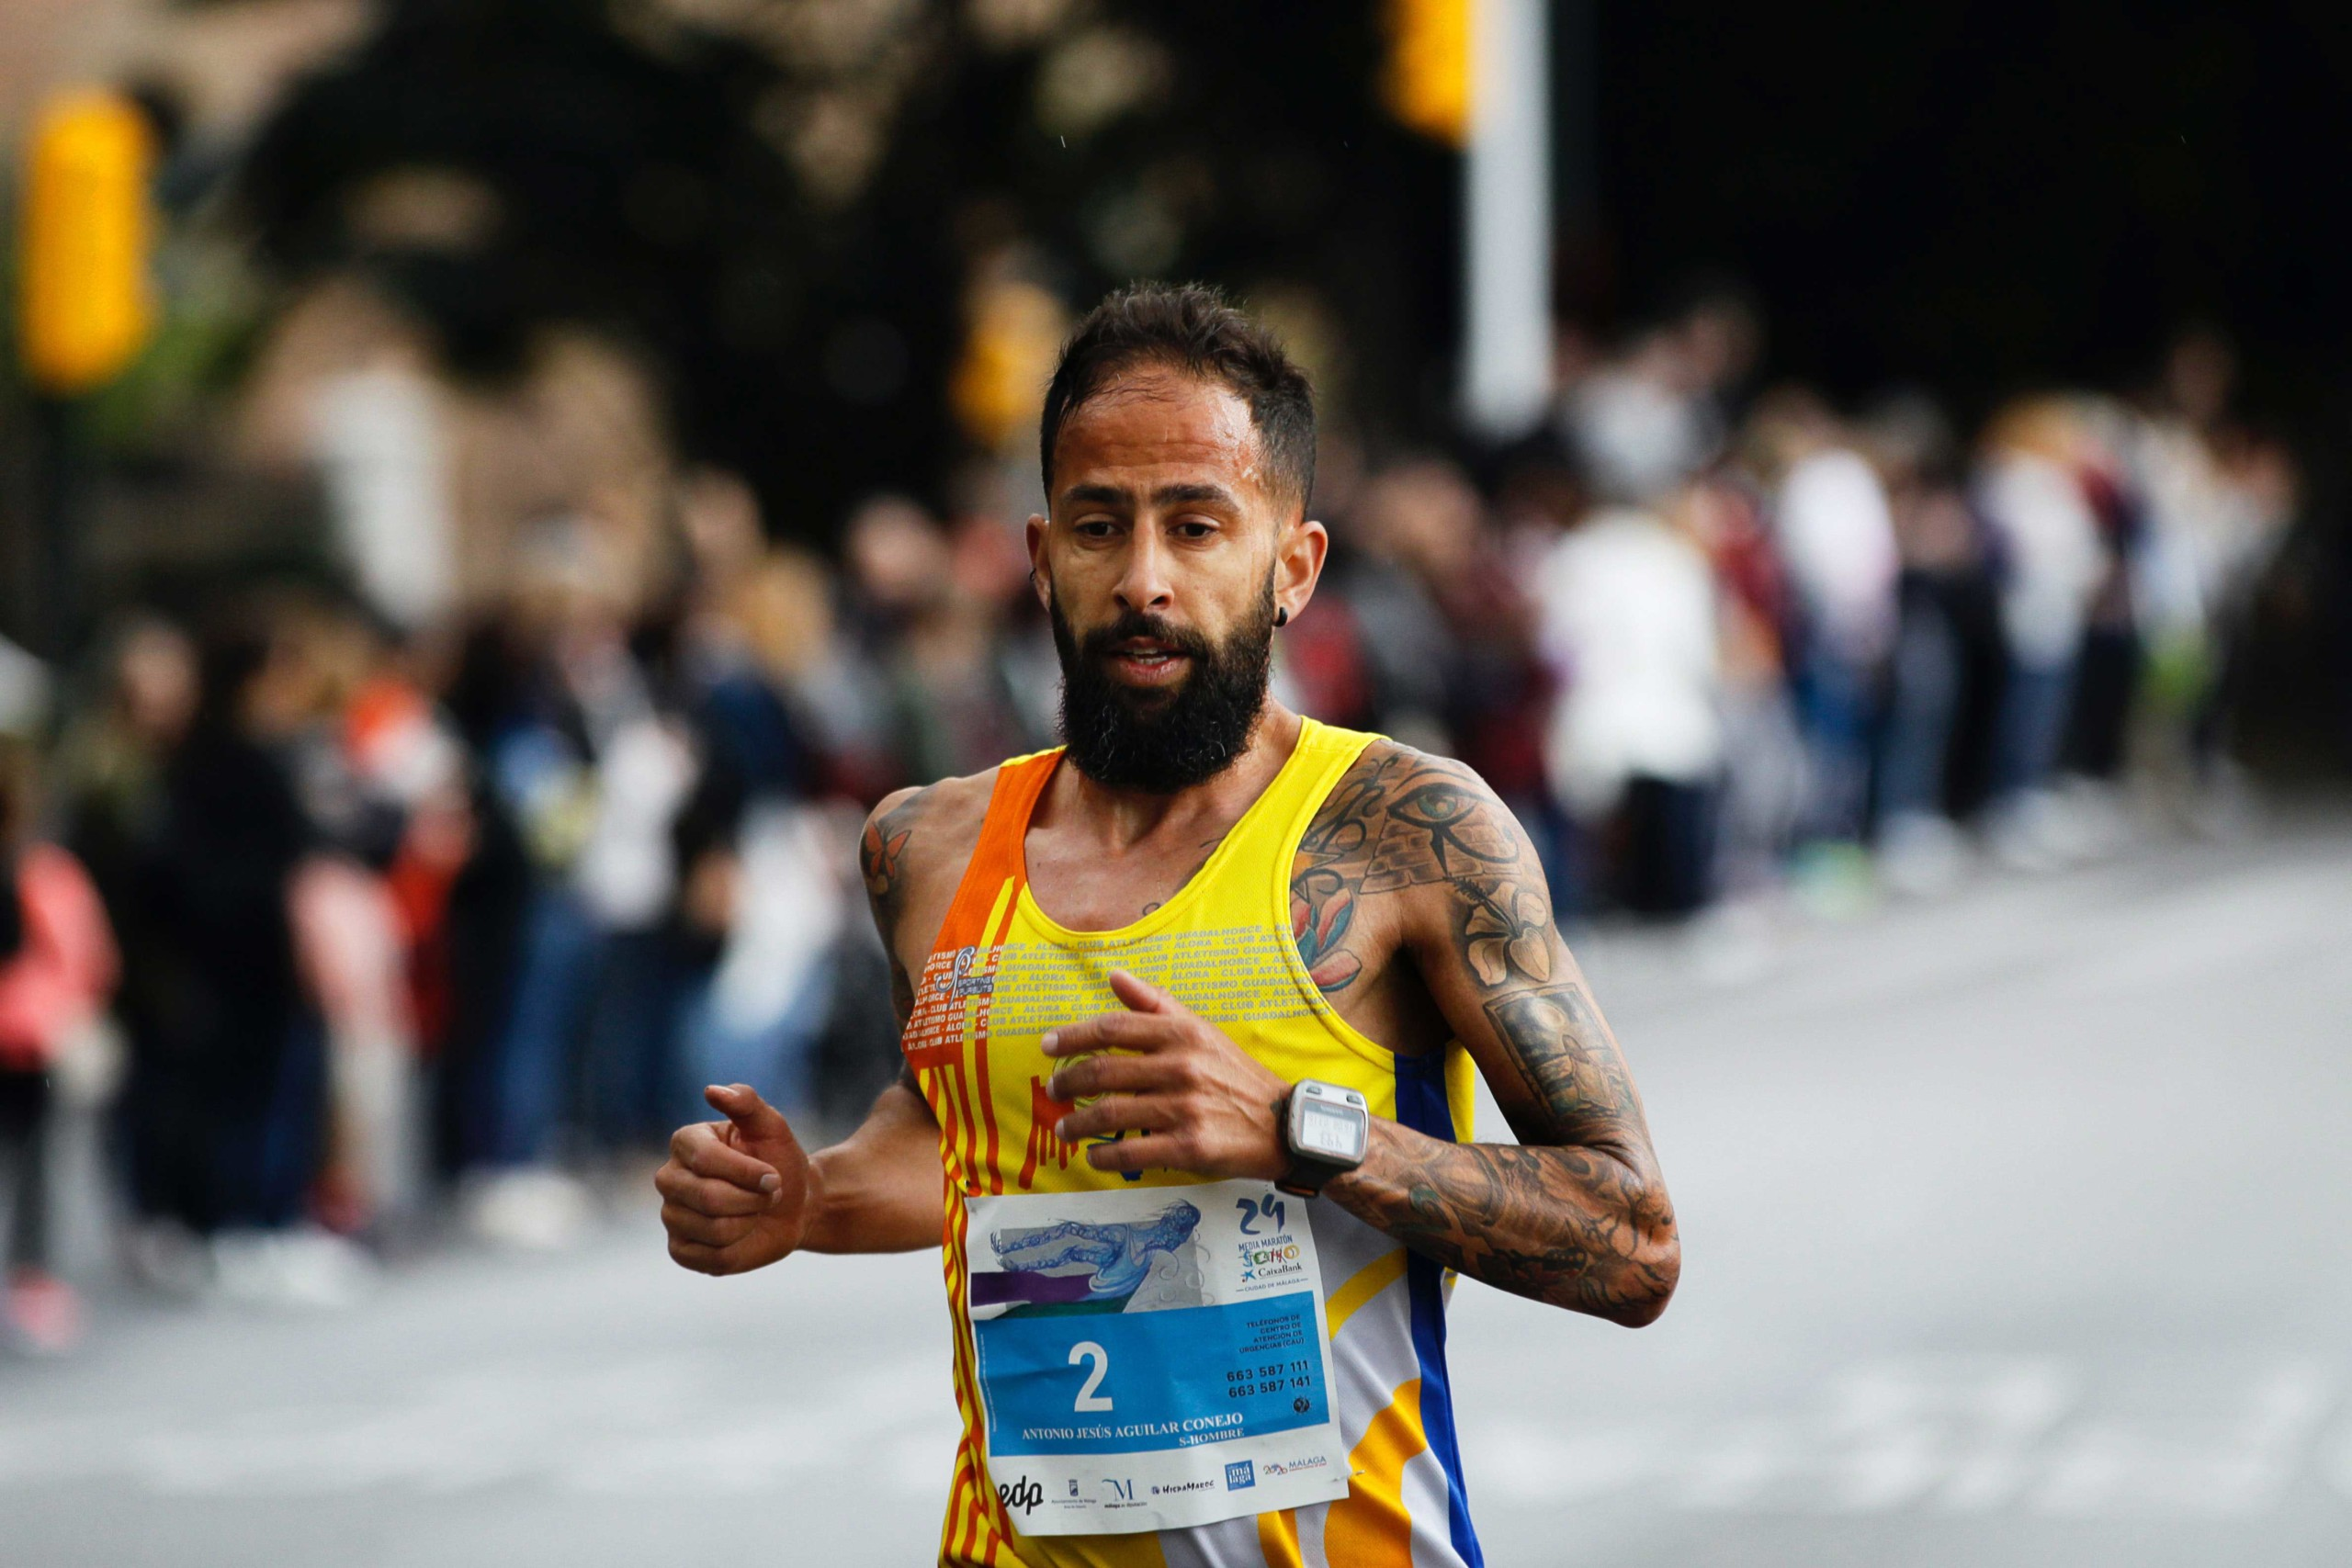 Man running in a running race